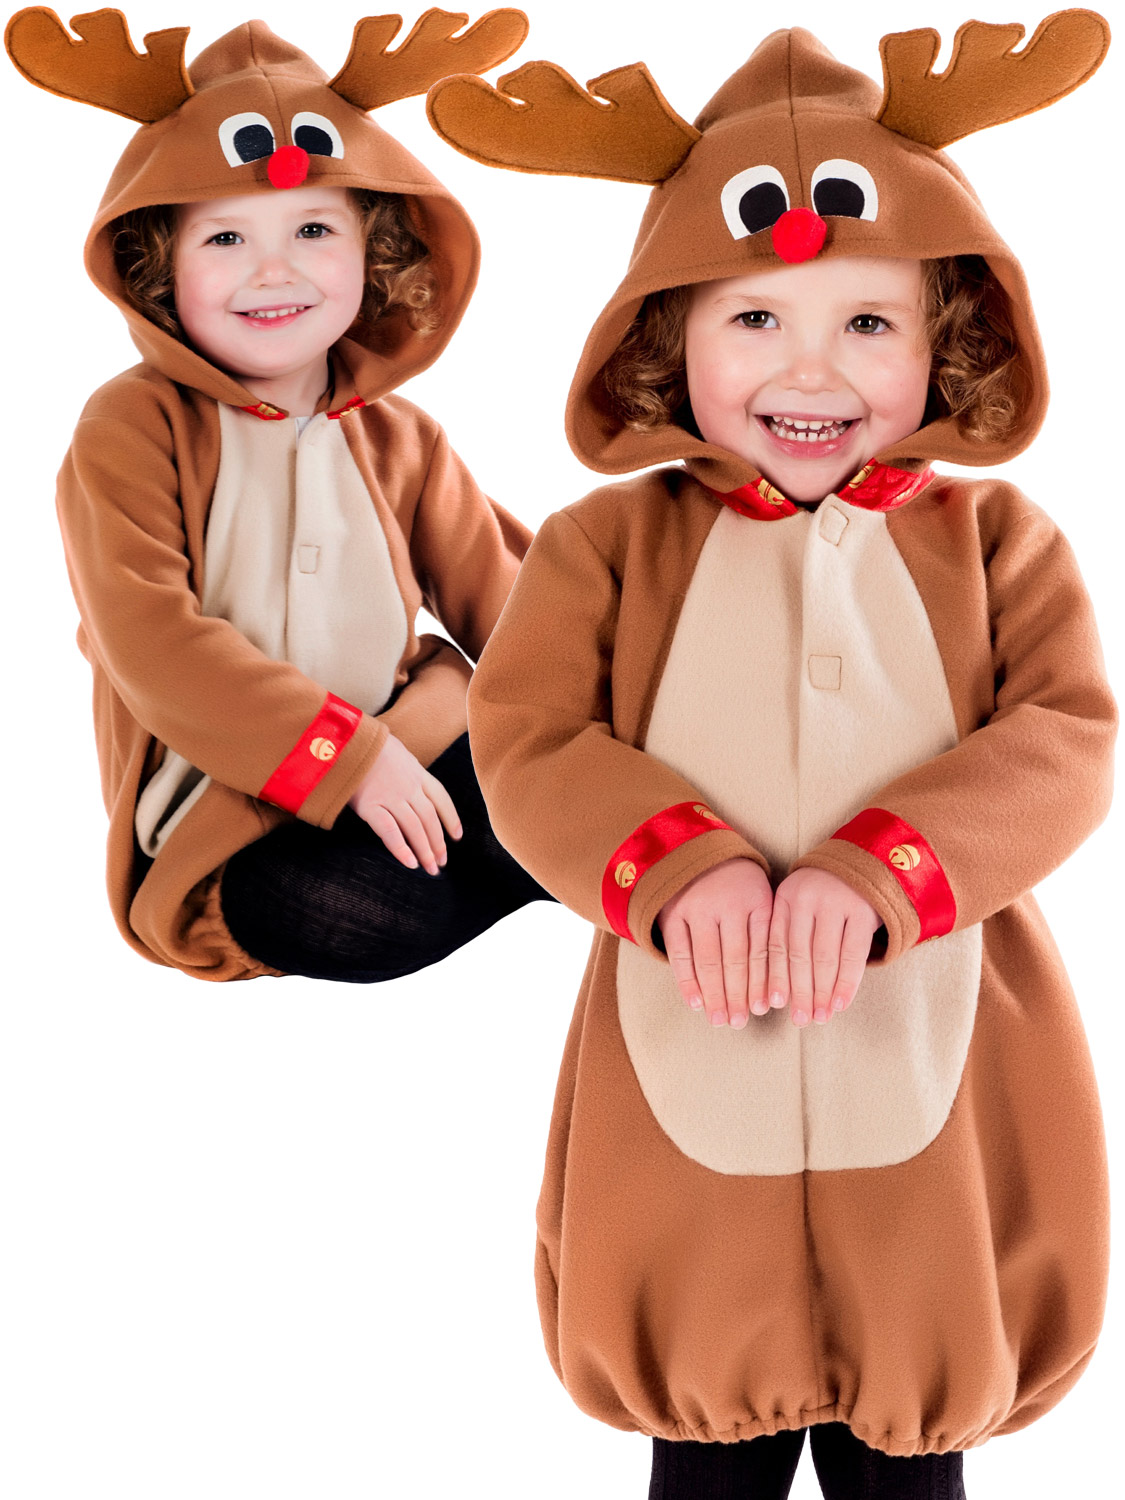 bcf3a5aa5 Details about Girls Toddler Reindeer Costume Childs Christmas Fancy Dress  Kids Xmas Rudolph